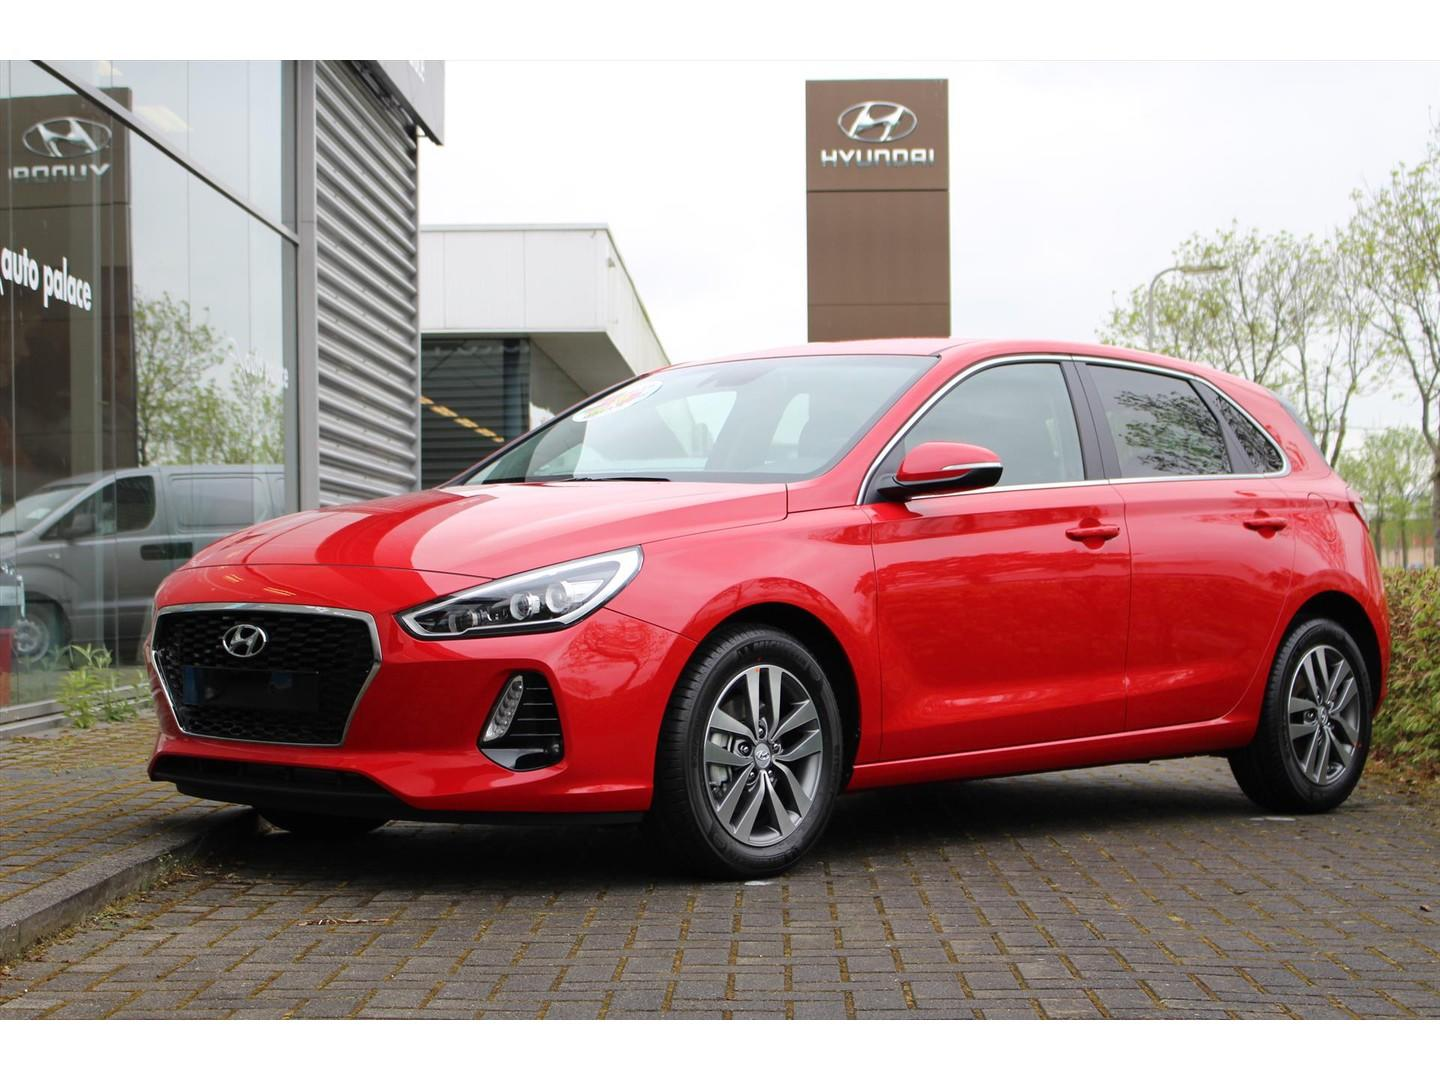 Hyundai I30 First edition